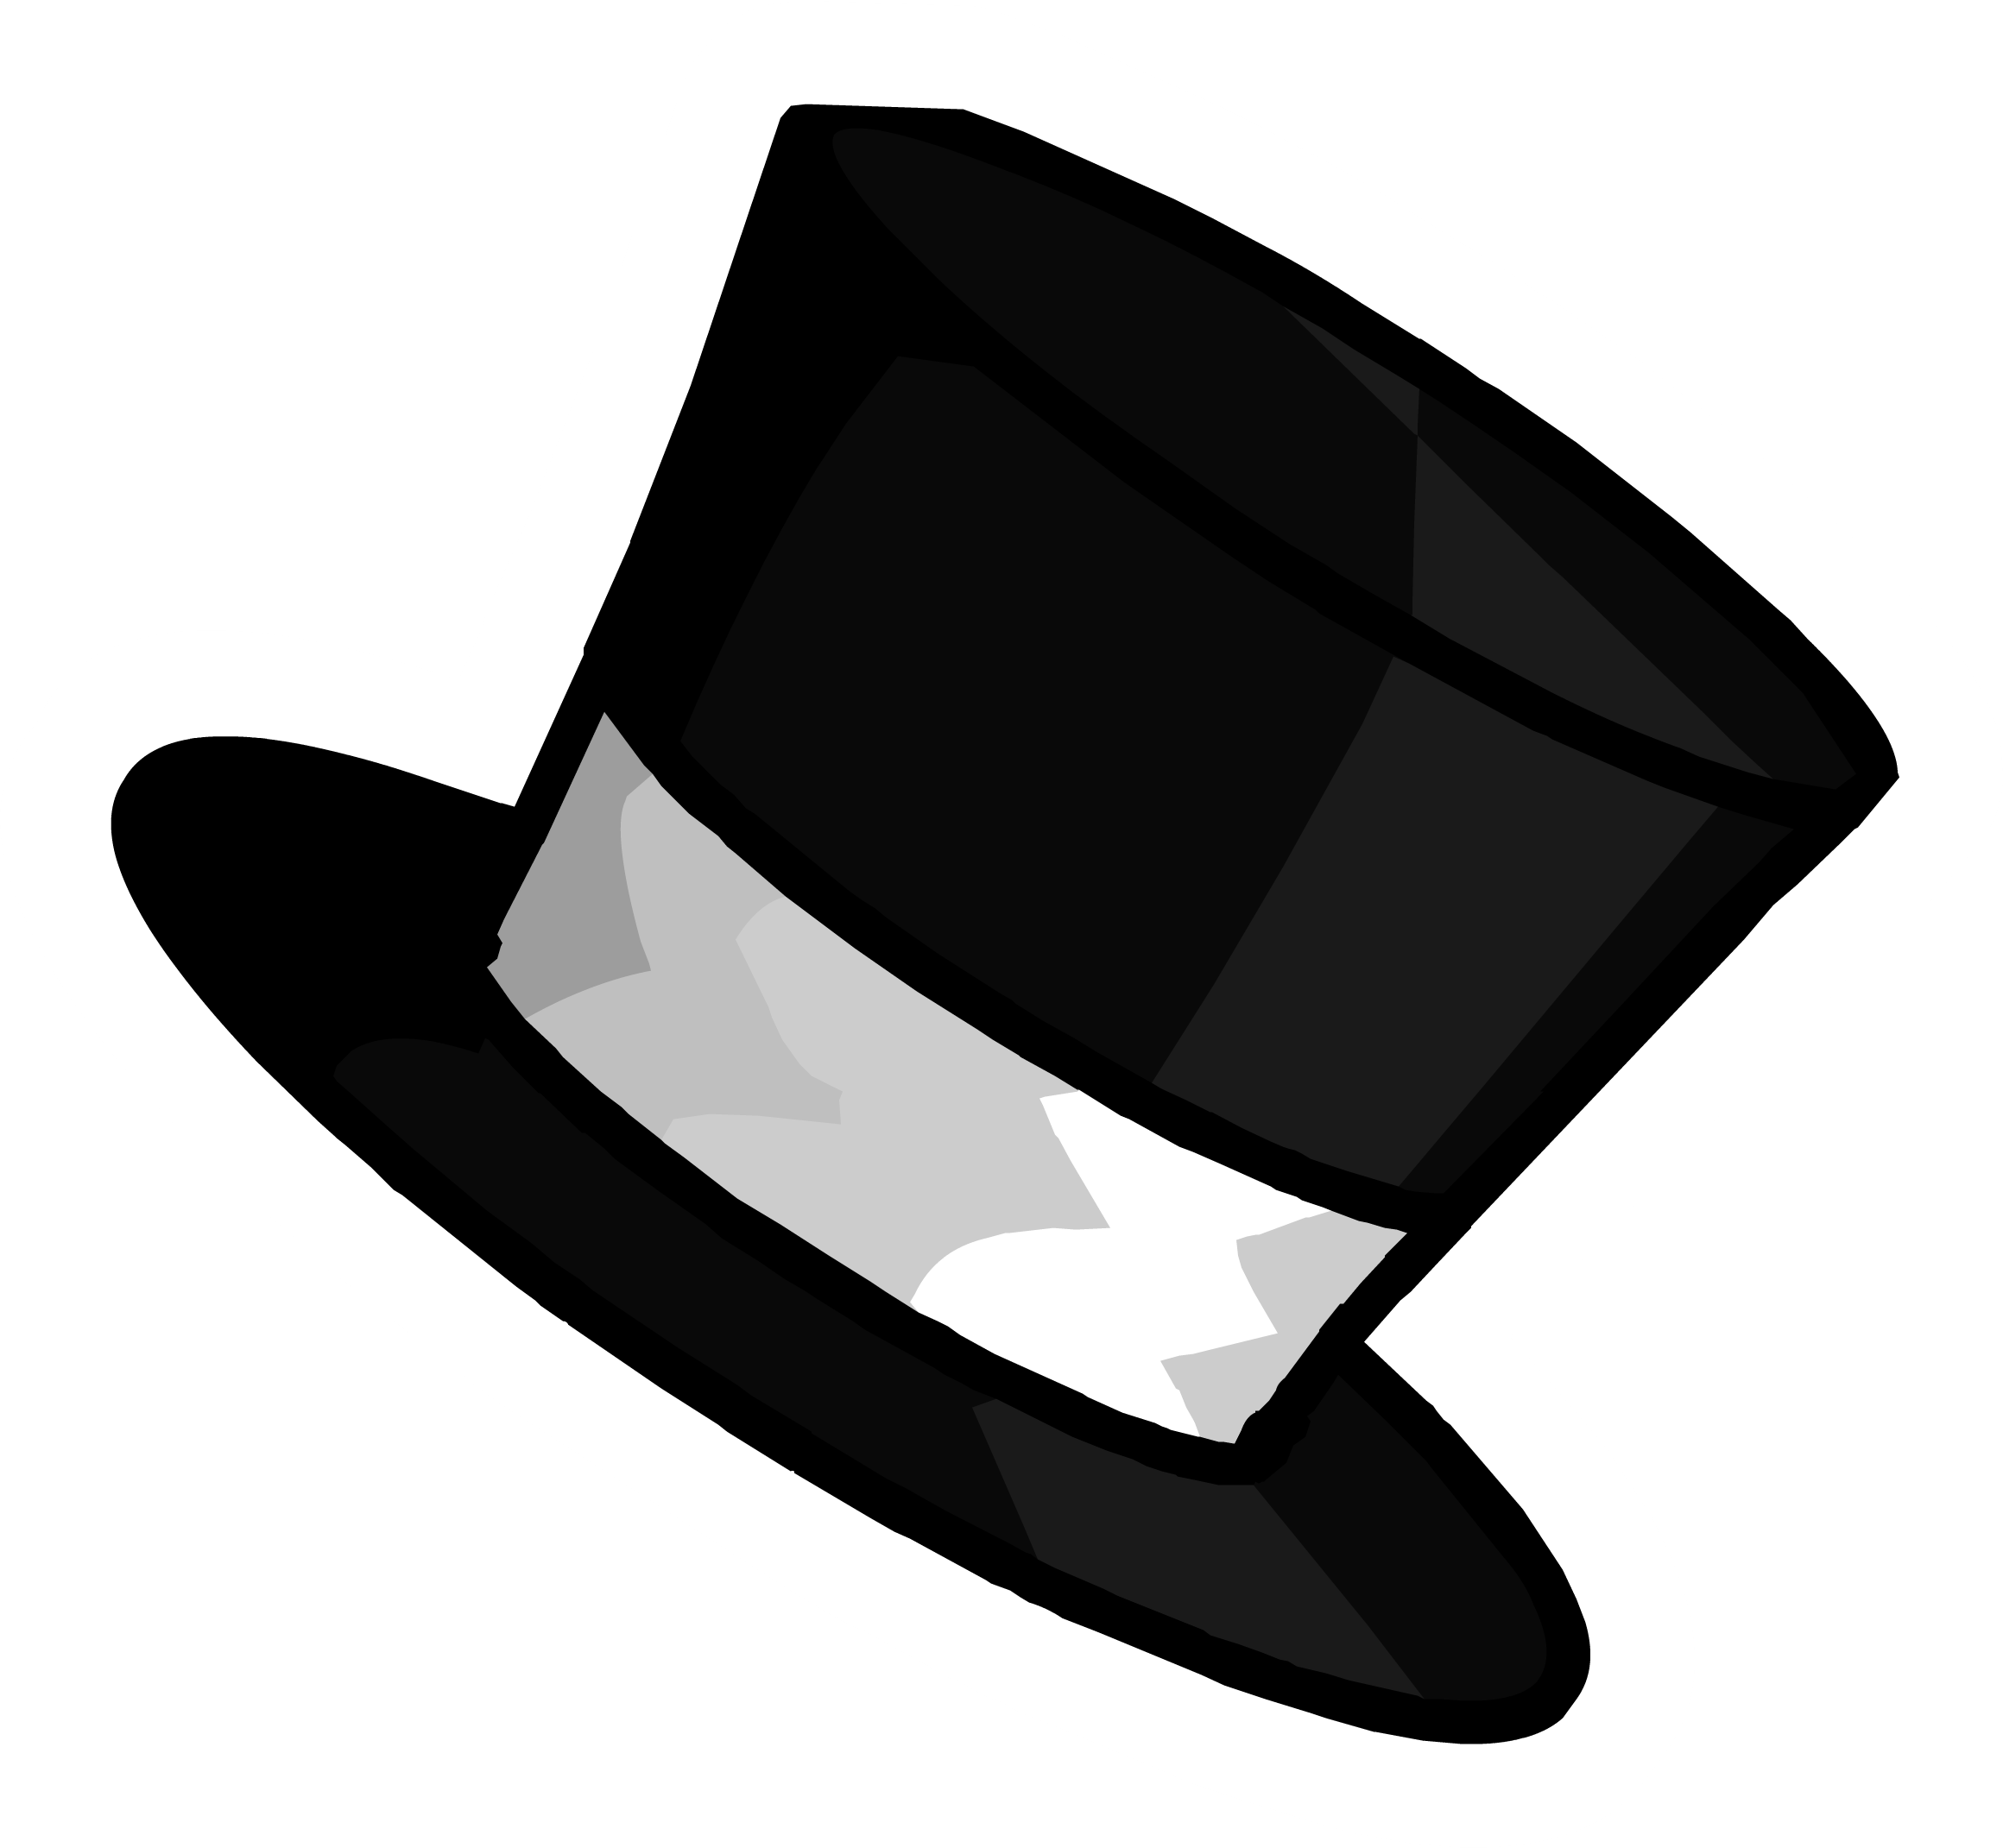 Drawing penguins top hat. Outline pin club penguin